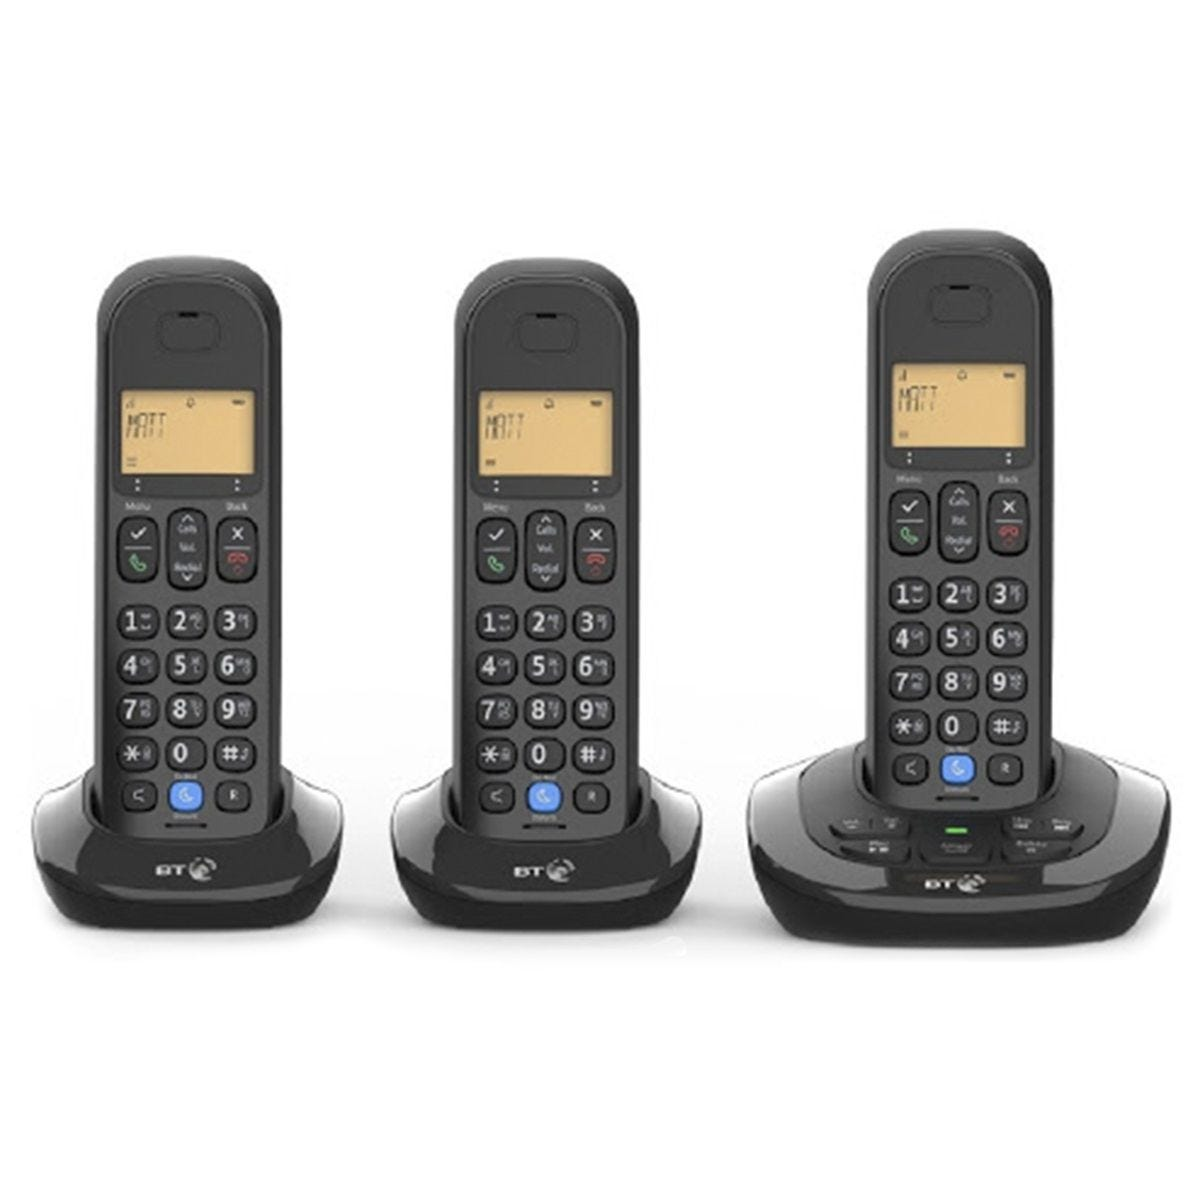 BT 3880 Cordless Home Phone with Nuisance Call Blocking and Answering Machine - Trio